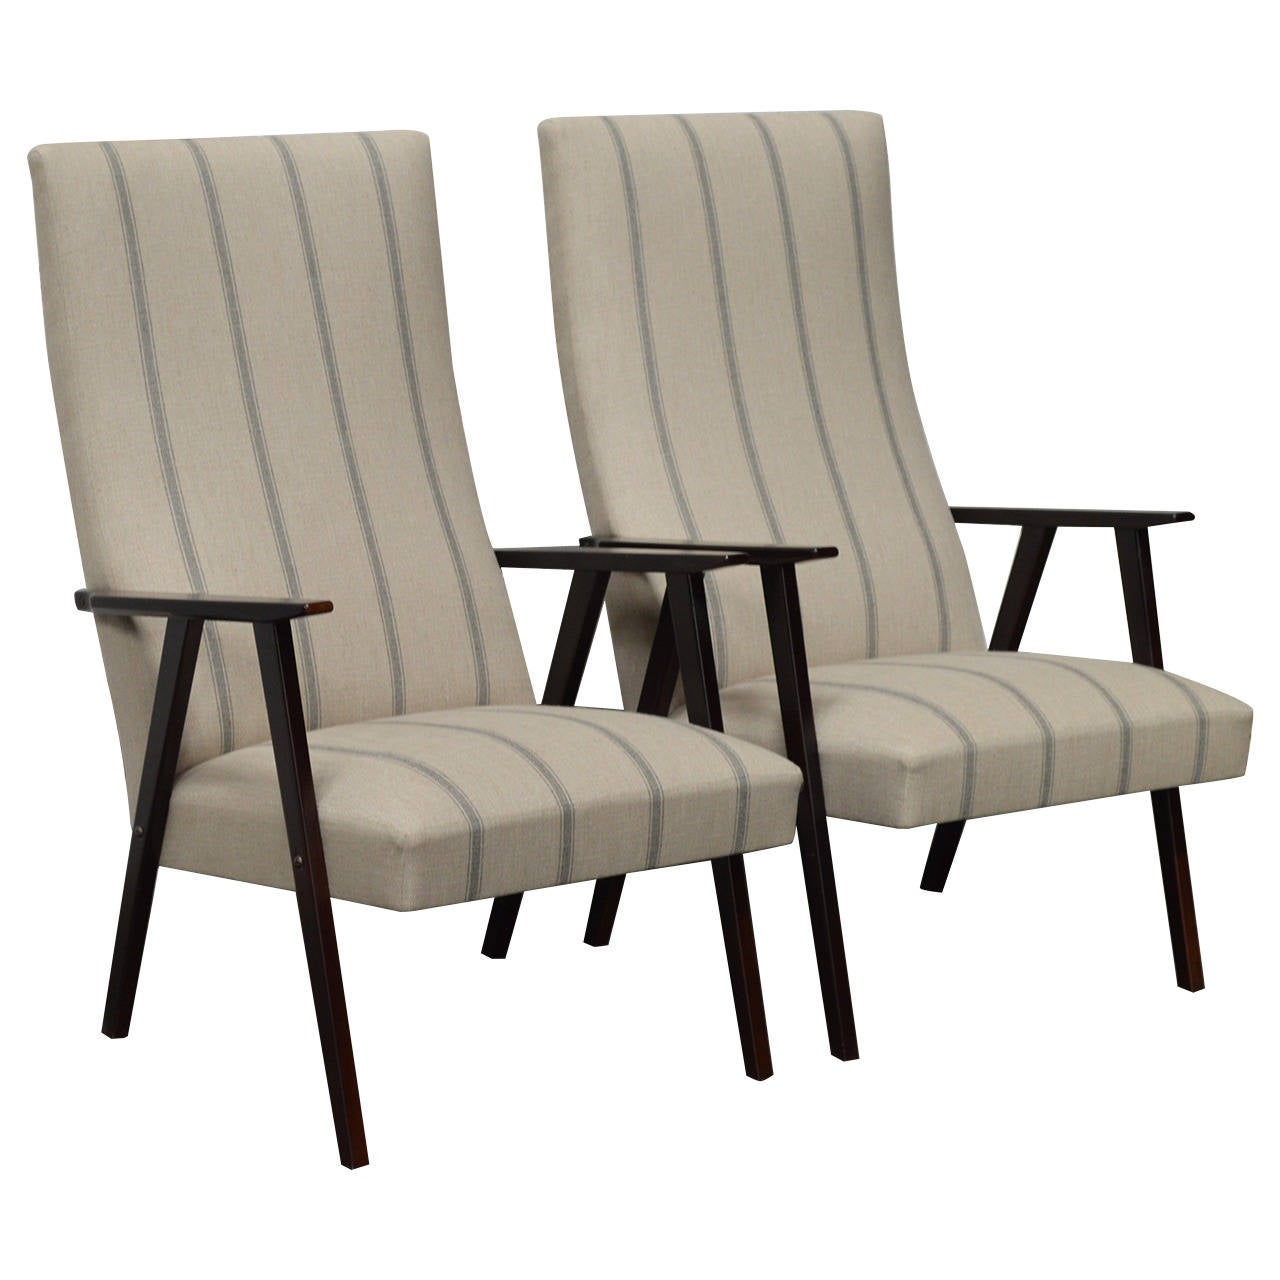 Pair of swedish mid century modern high back lounge for Mid century modern armchairs